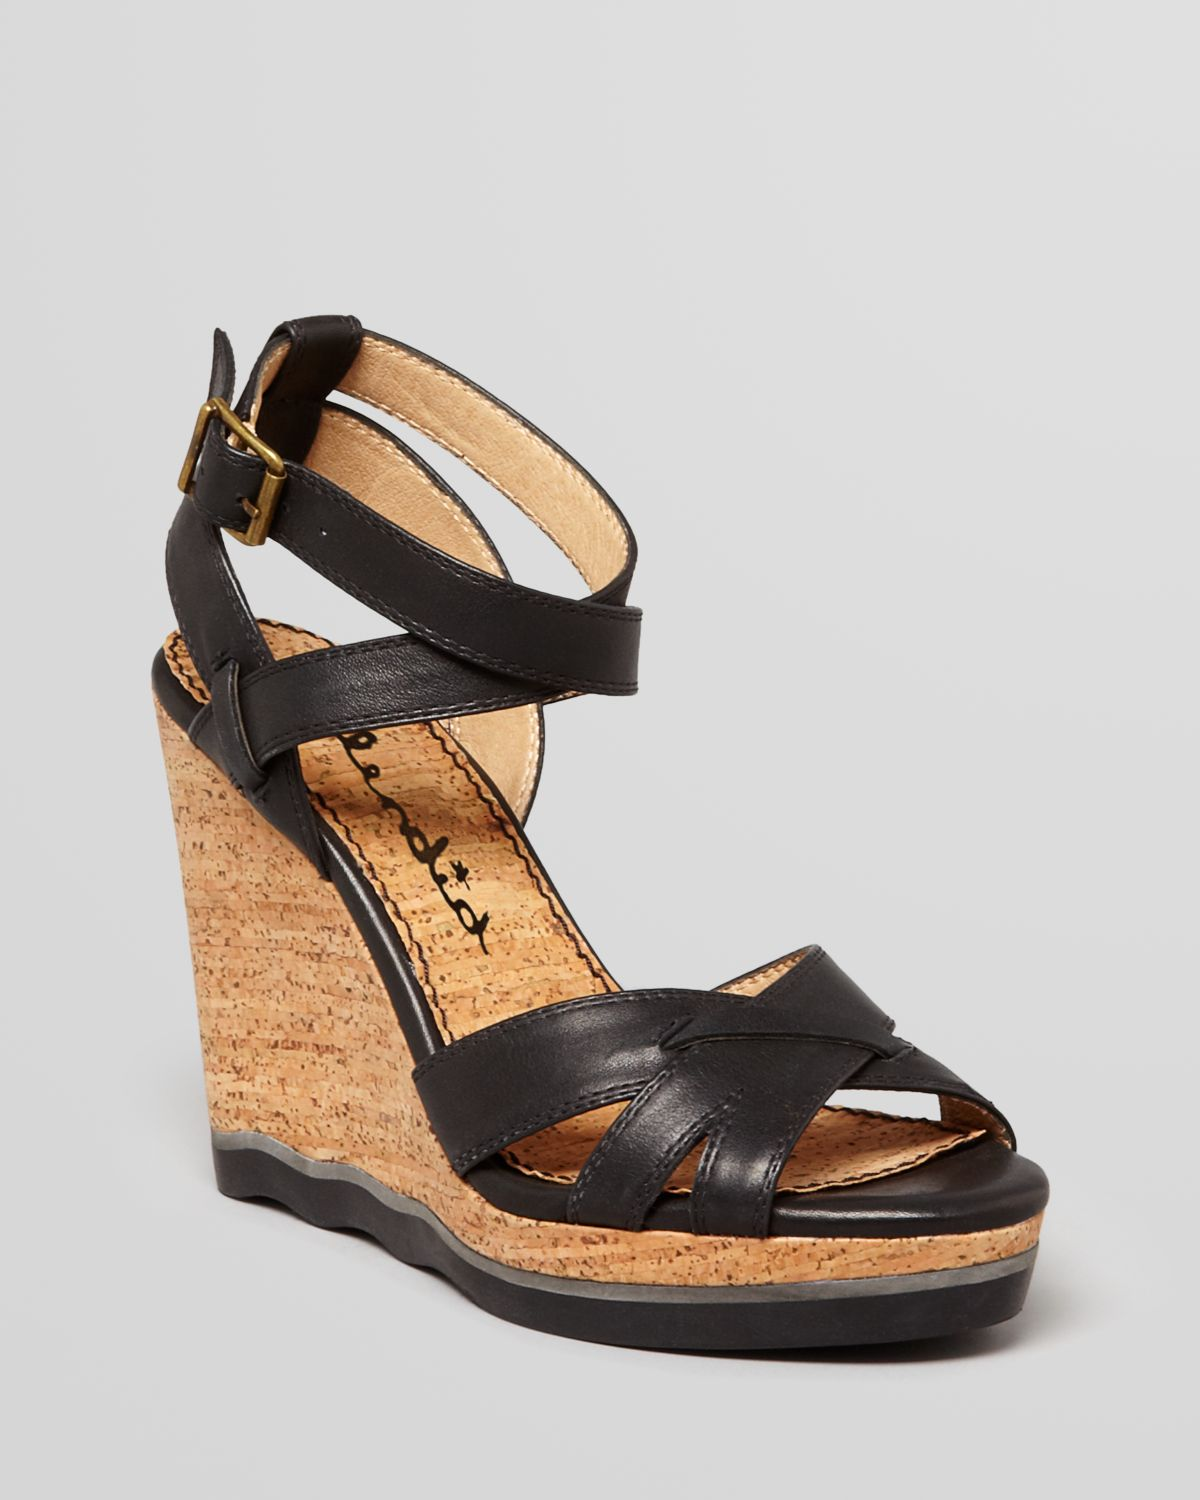 Lyst Splendid Platform Wedge Sandals Sage Cork In Black